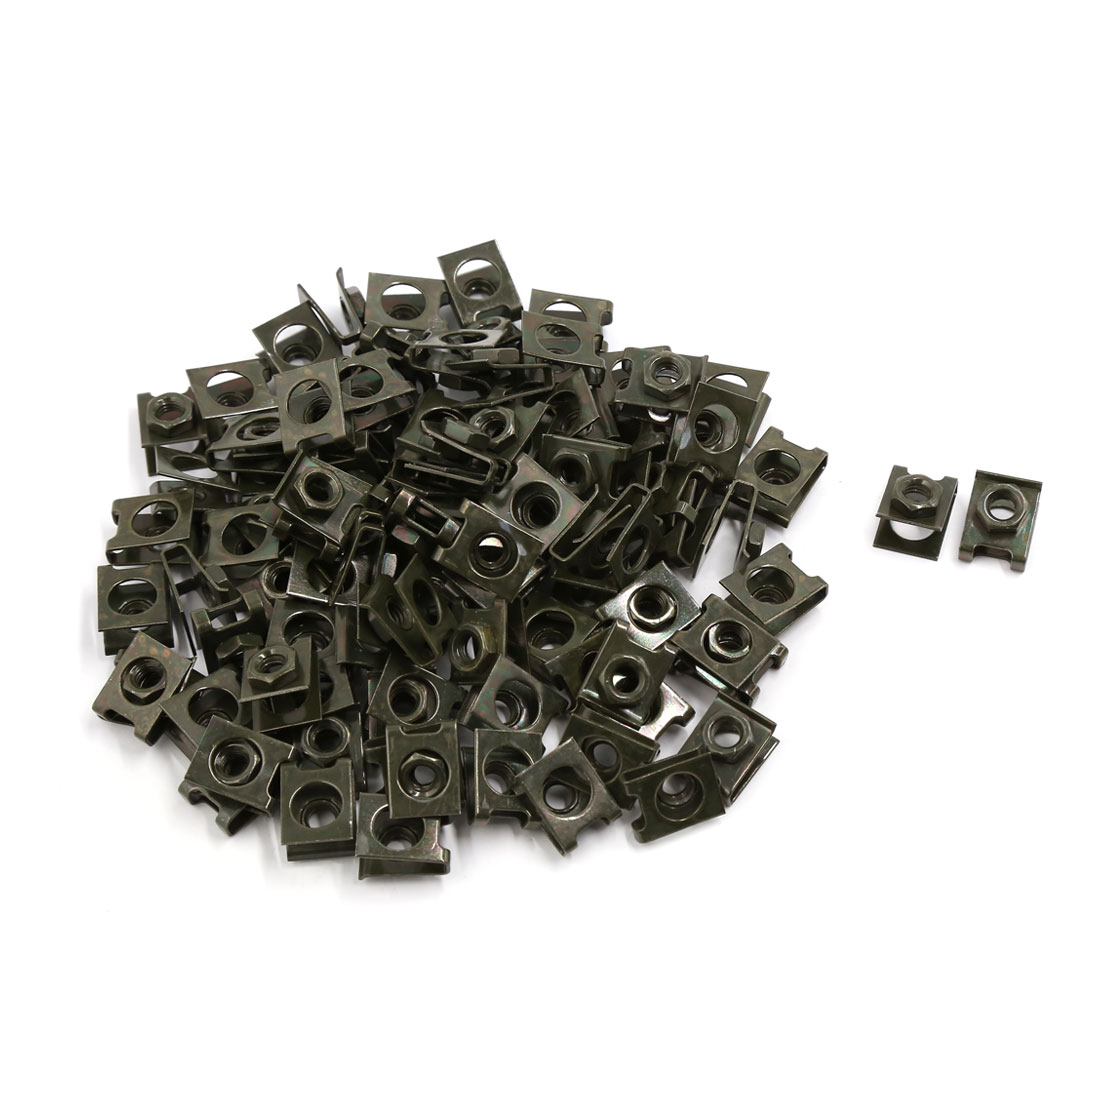 100 Pcs Brown Metal Motorcycle Sportbike Windscreen Fairing Fastener Clips